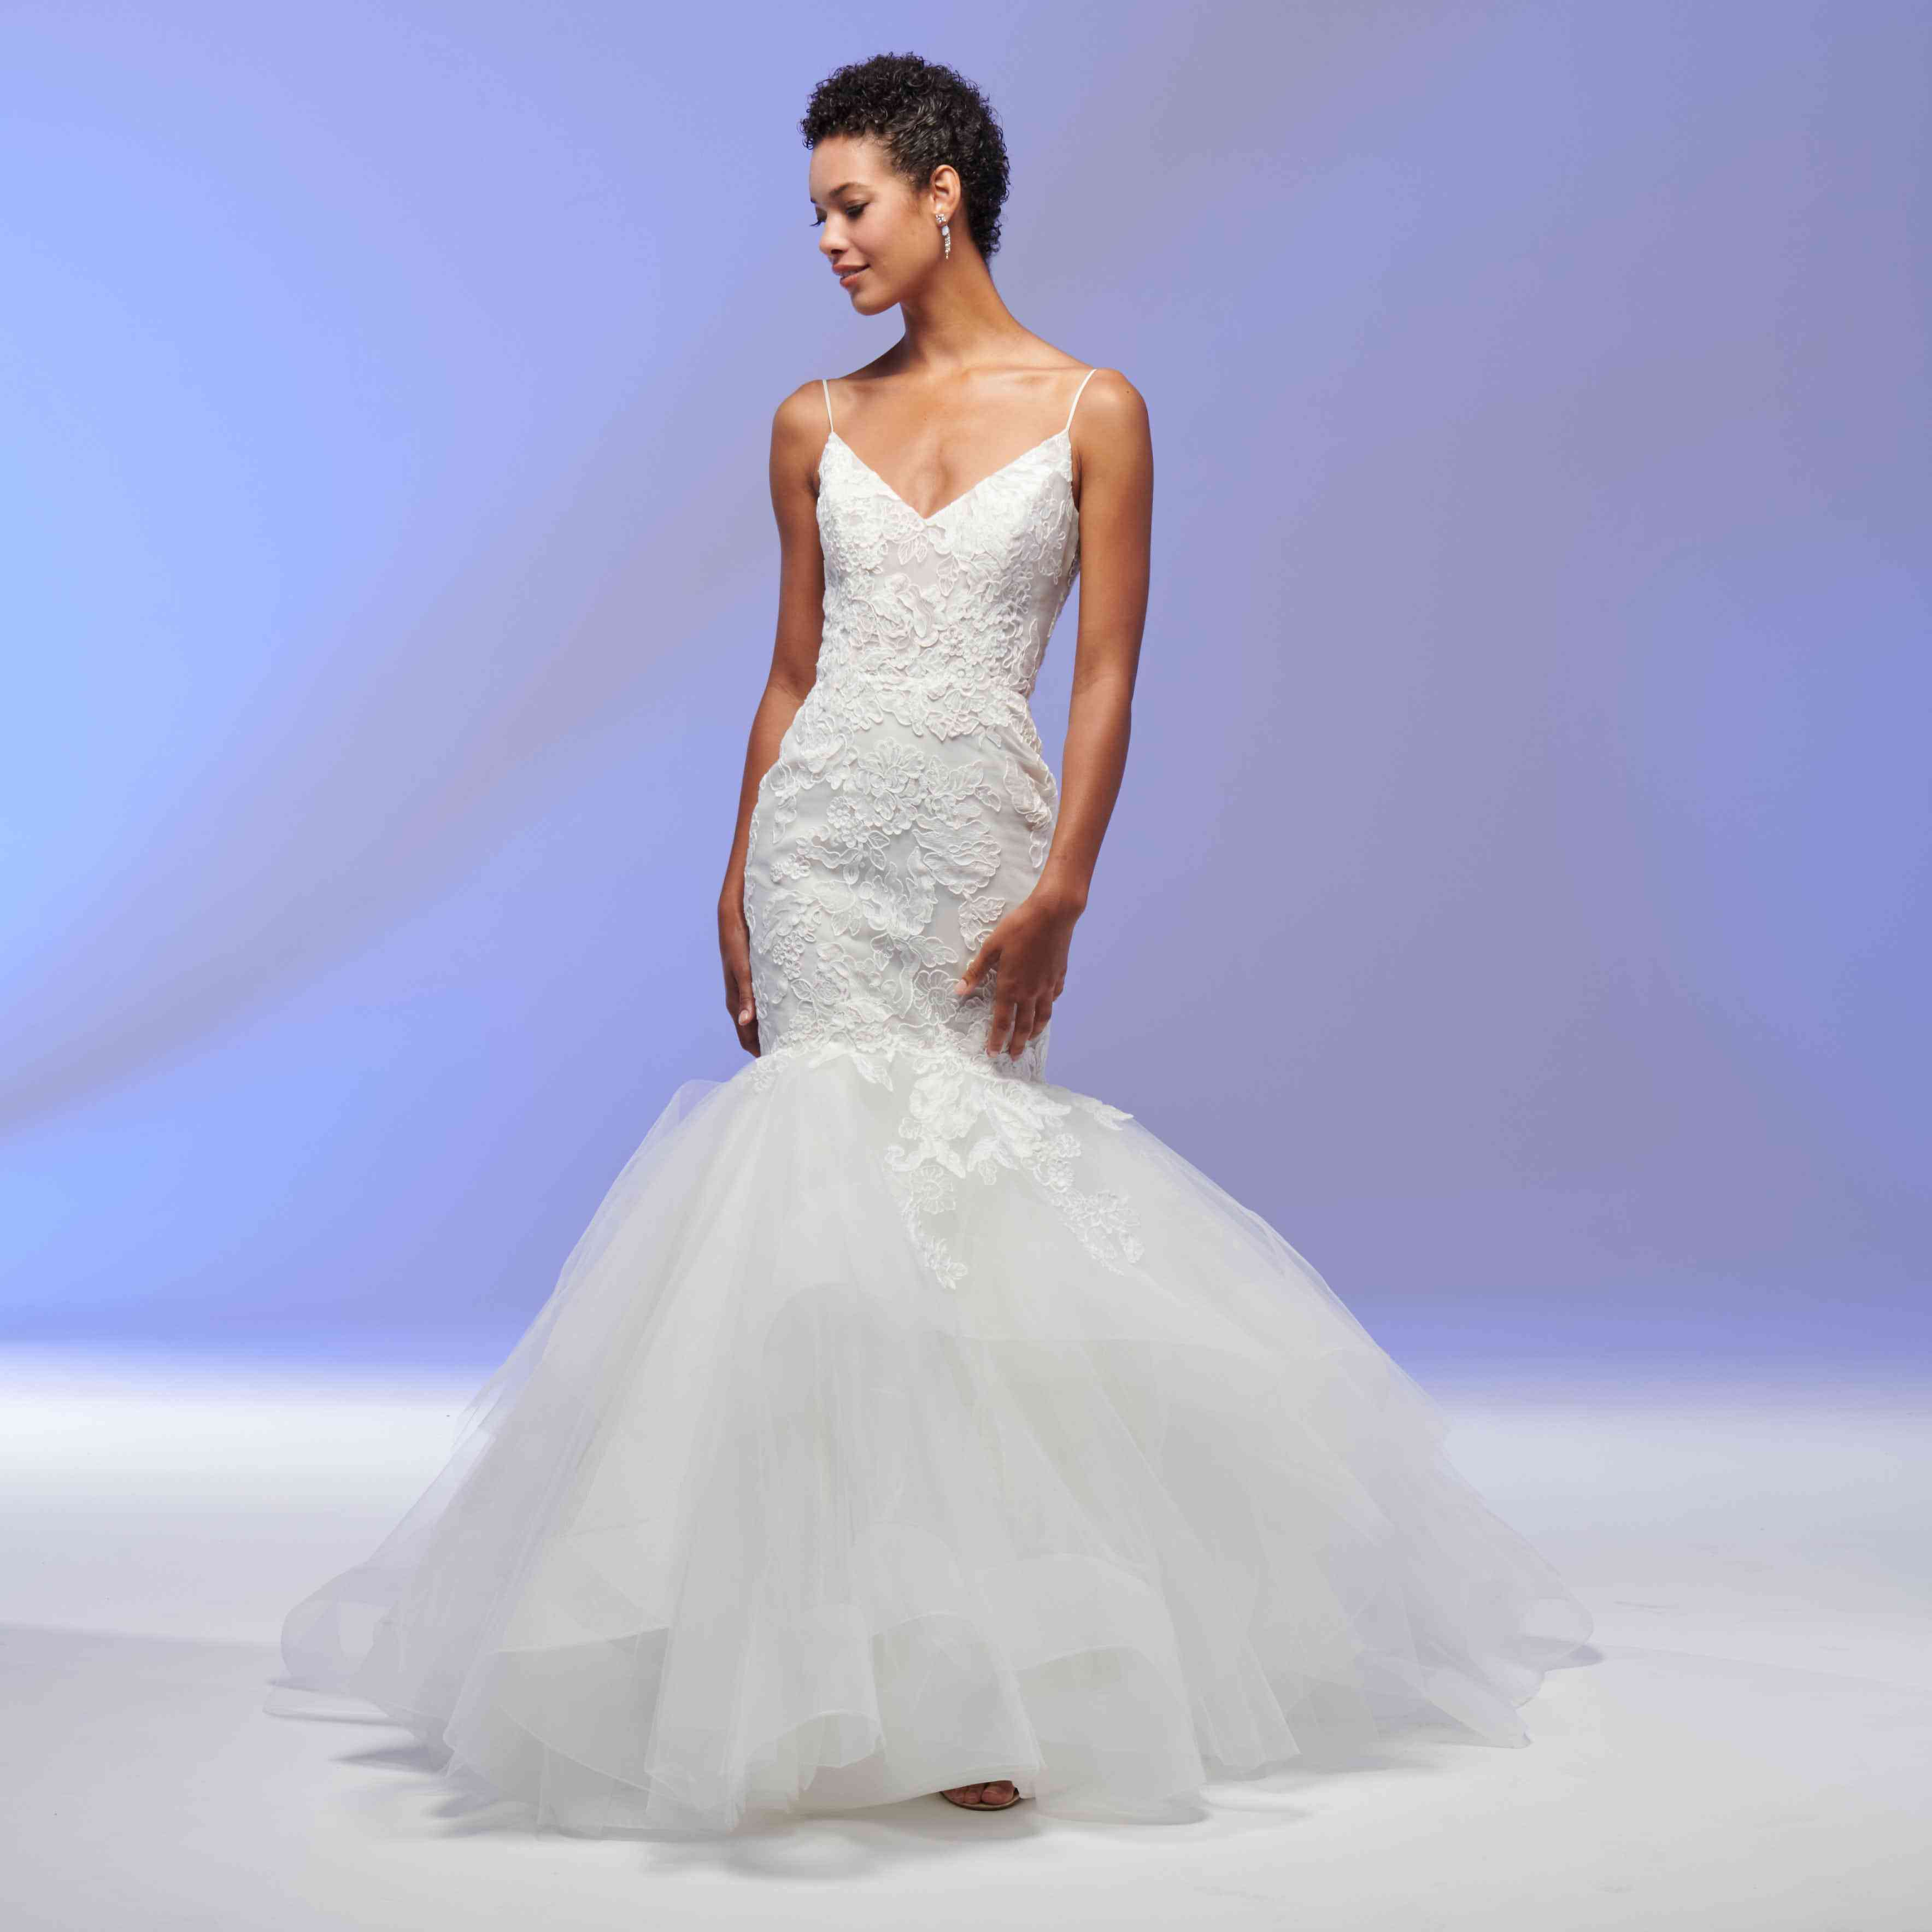 Juno fit-and-flare wedding dress